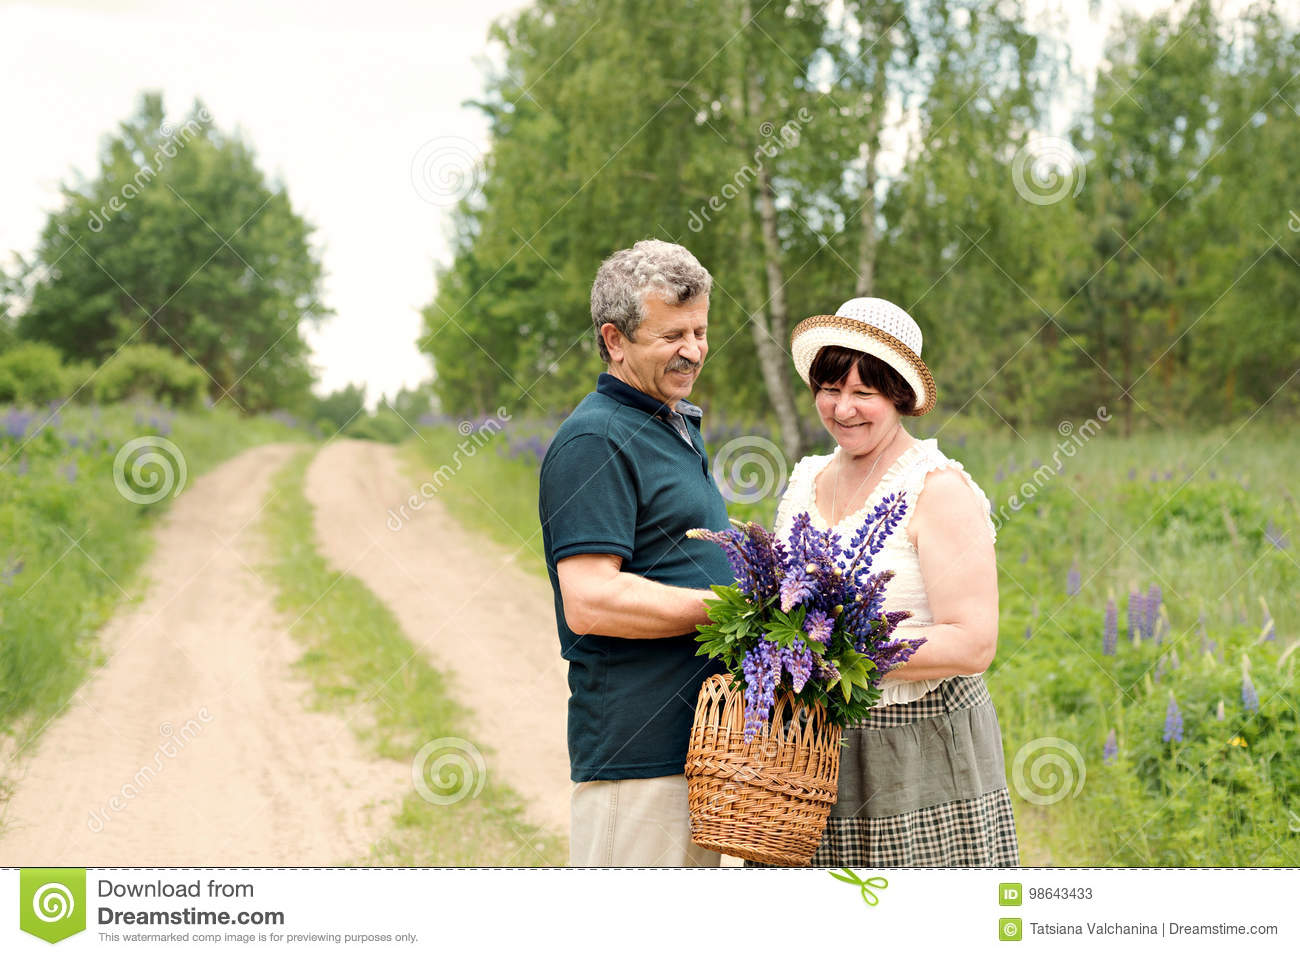 An elderly couple walks through the forest and a man gives a woman a woven basket with a bouquet of flowers of purple lupines